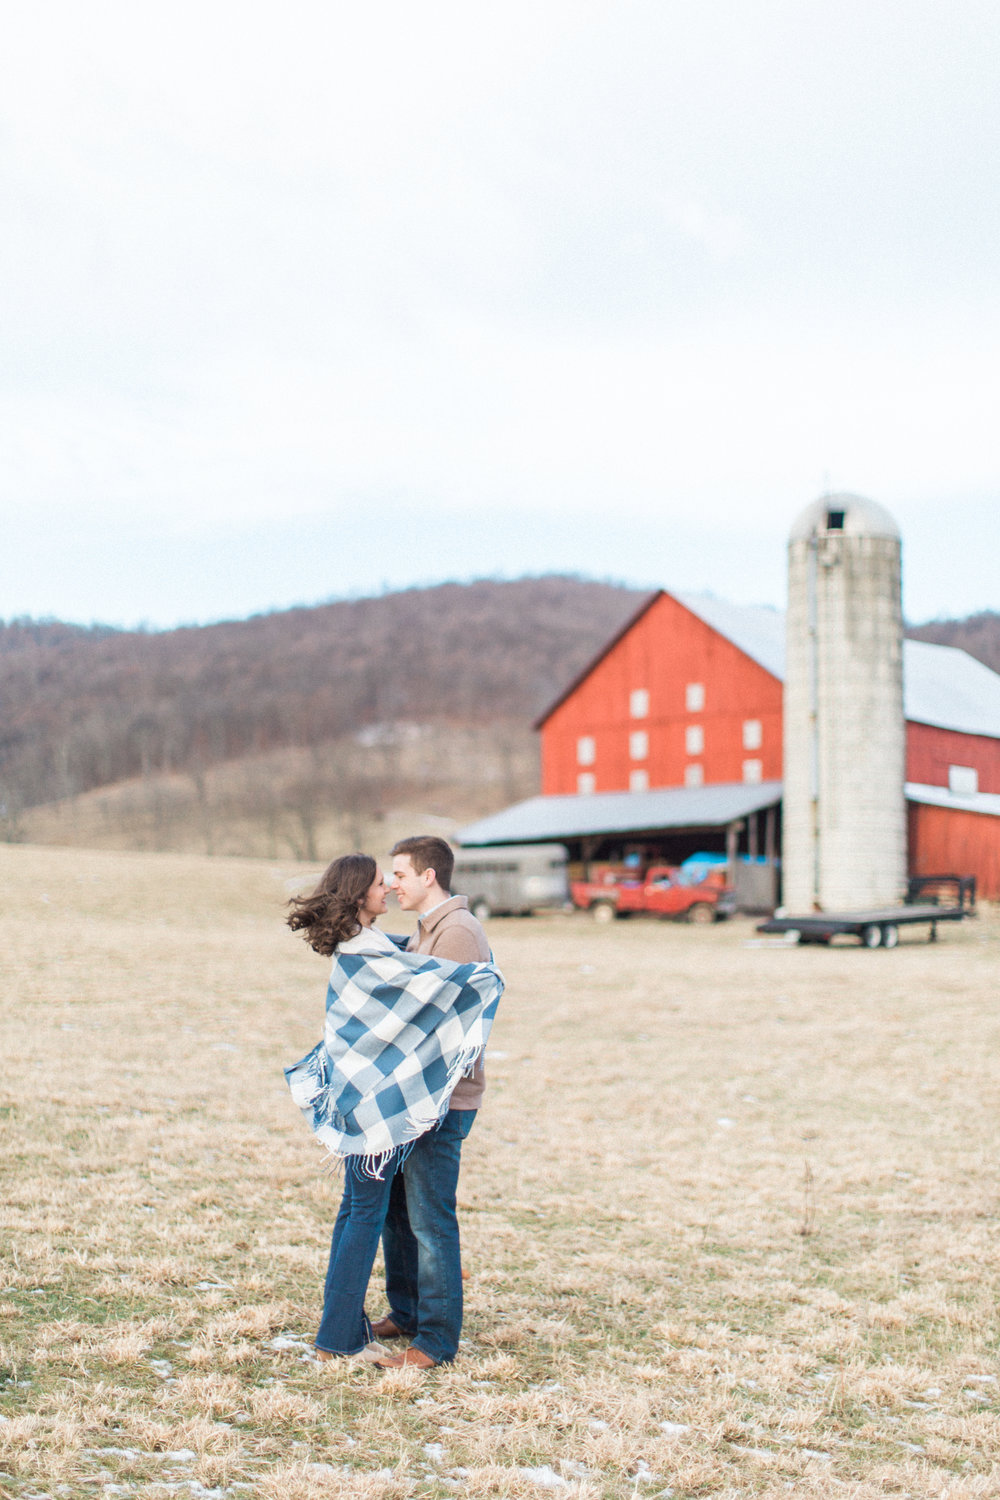 Abigail_Jill_Photography_Maryland_Engagement_Farm_Emily_Justin93.jpg